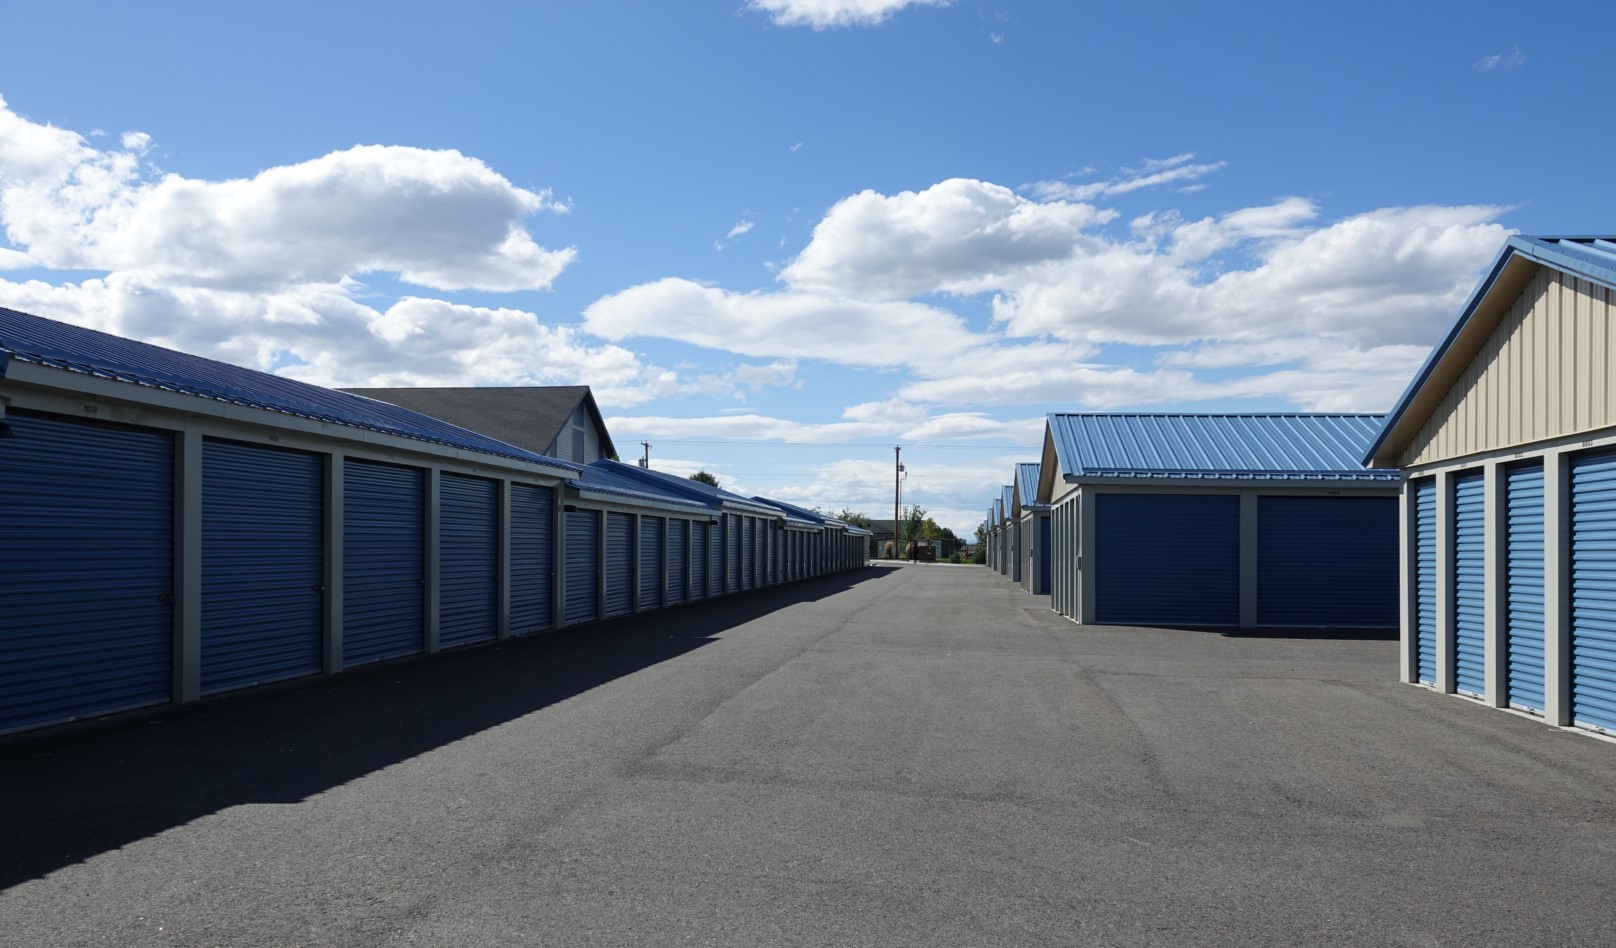 Storage Units in Bozeman, MT